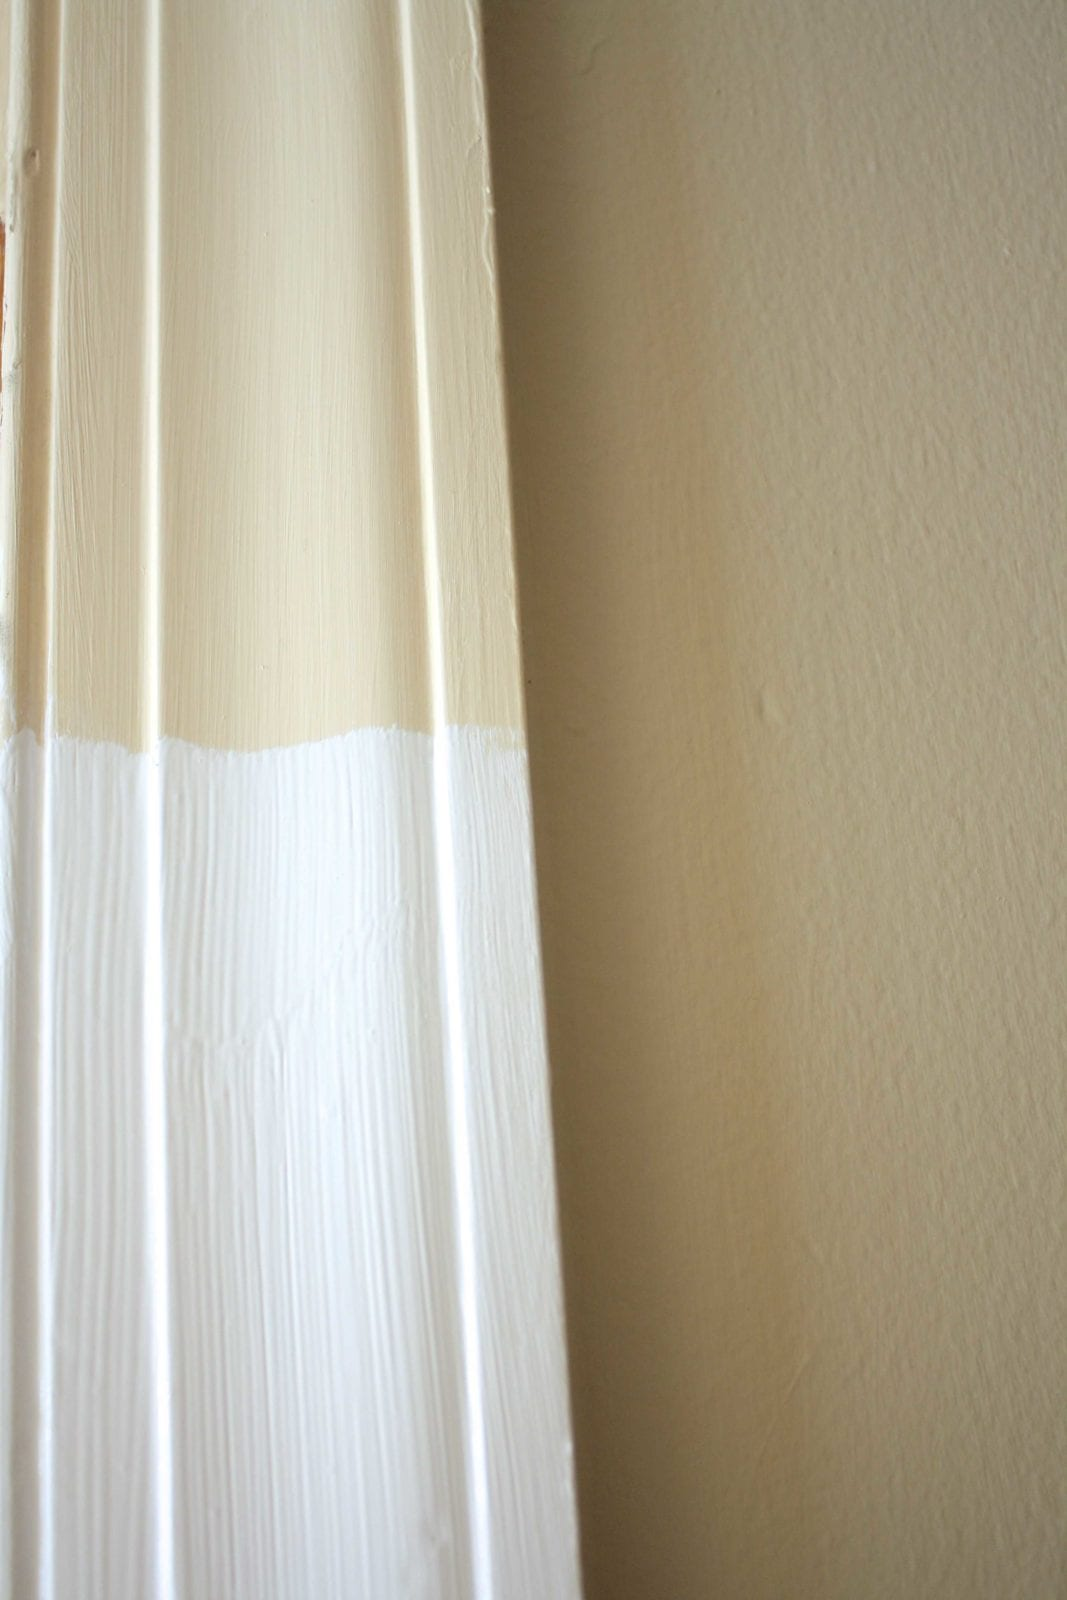 Painted Trim Can Make A Huge Impact Full Details By Designer Trapped In A Lawyer S